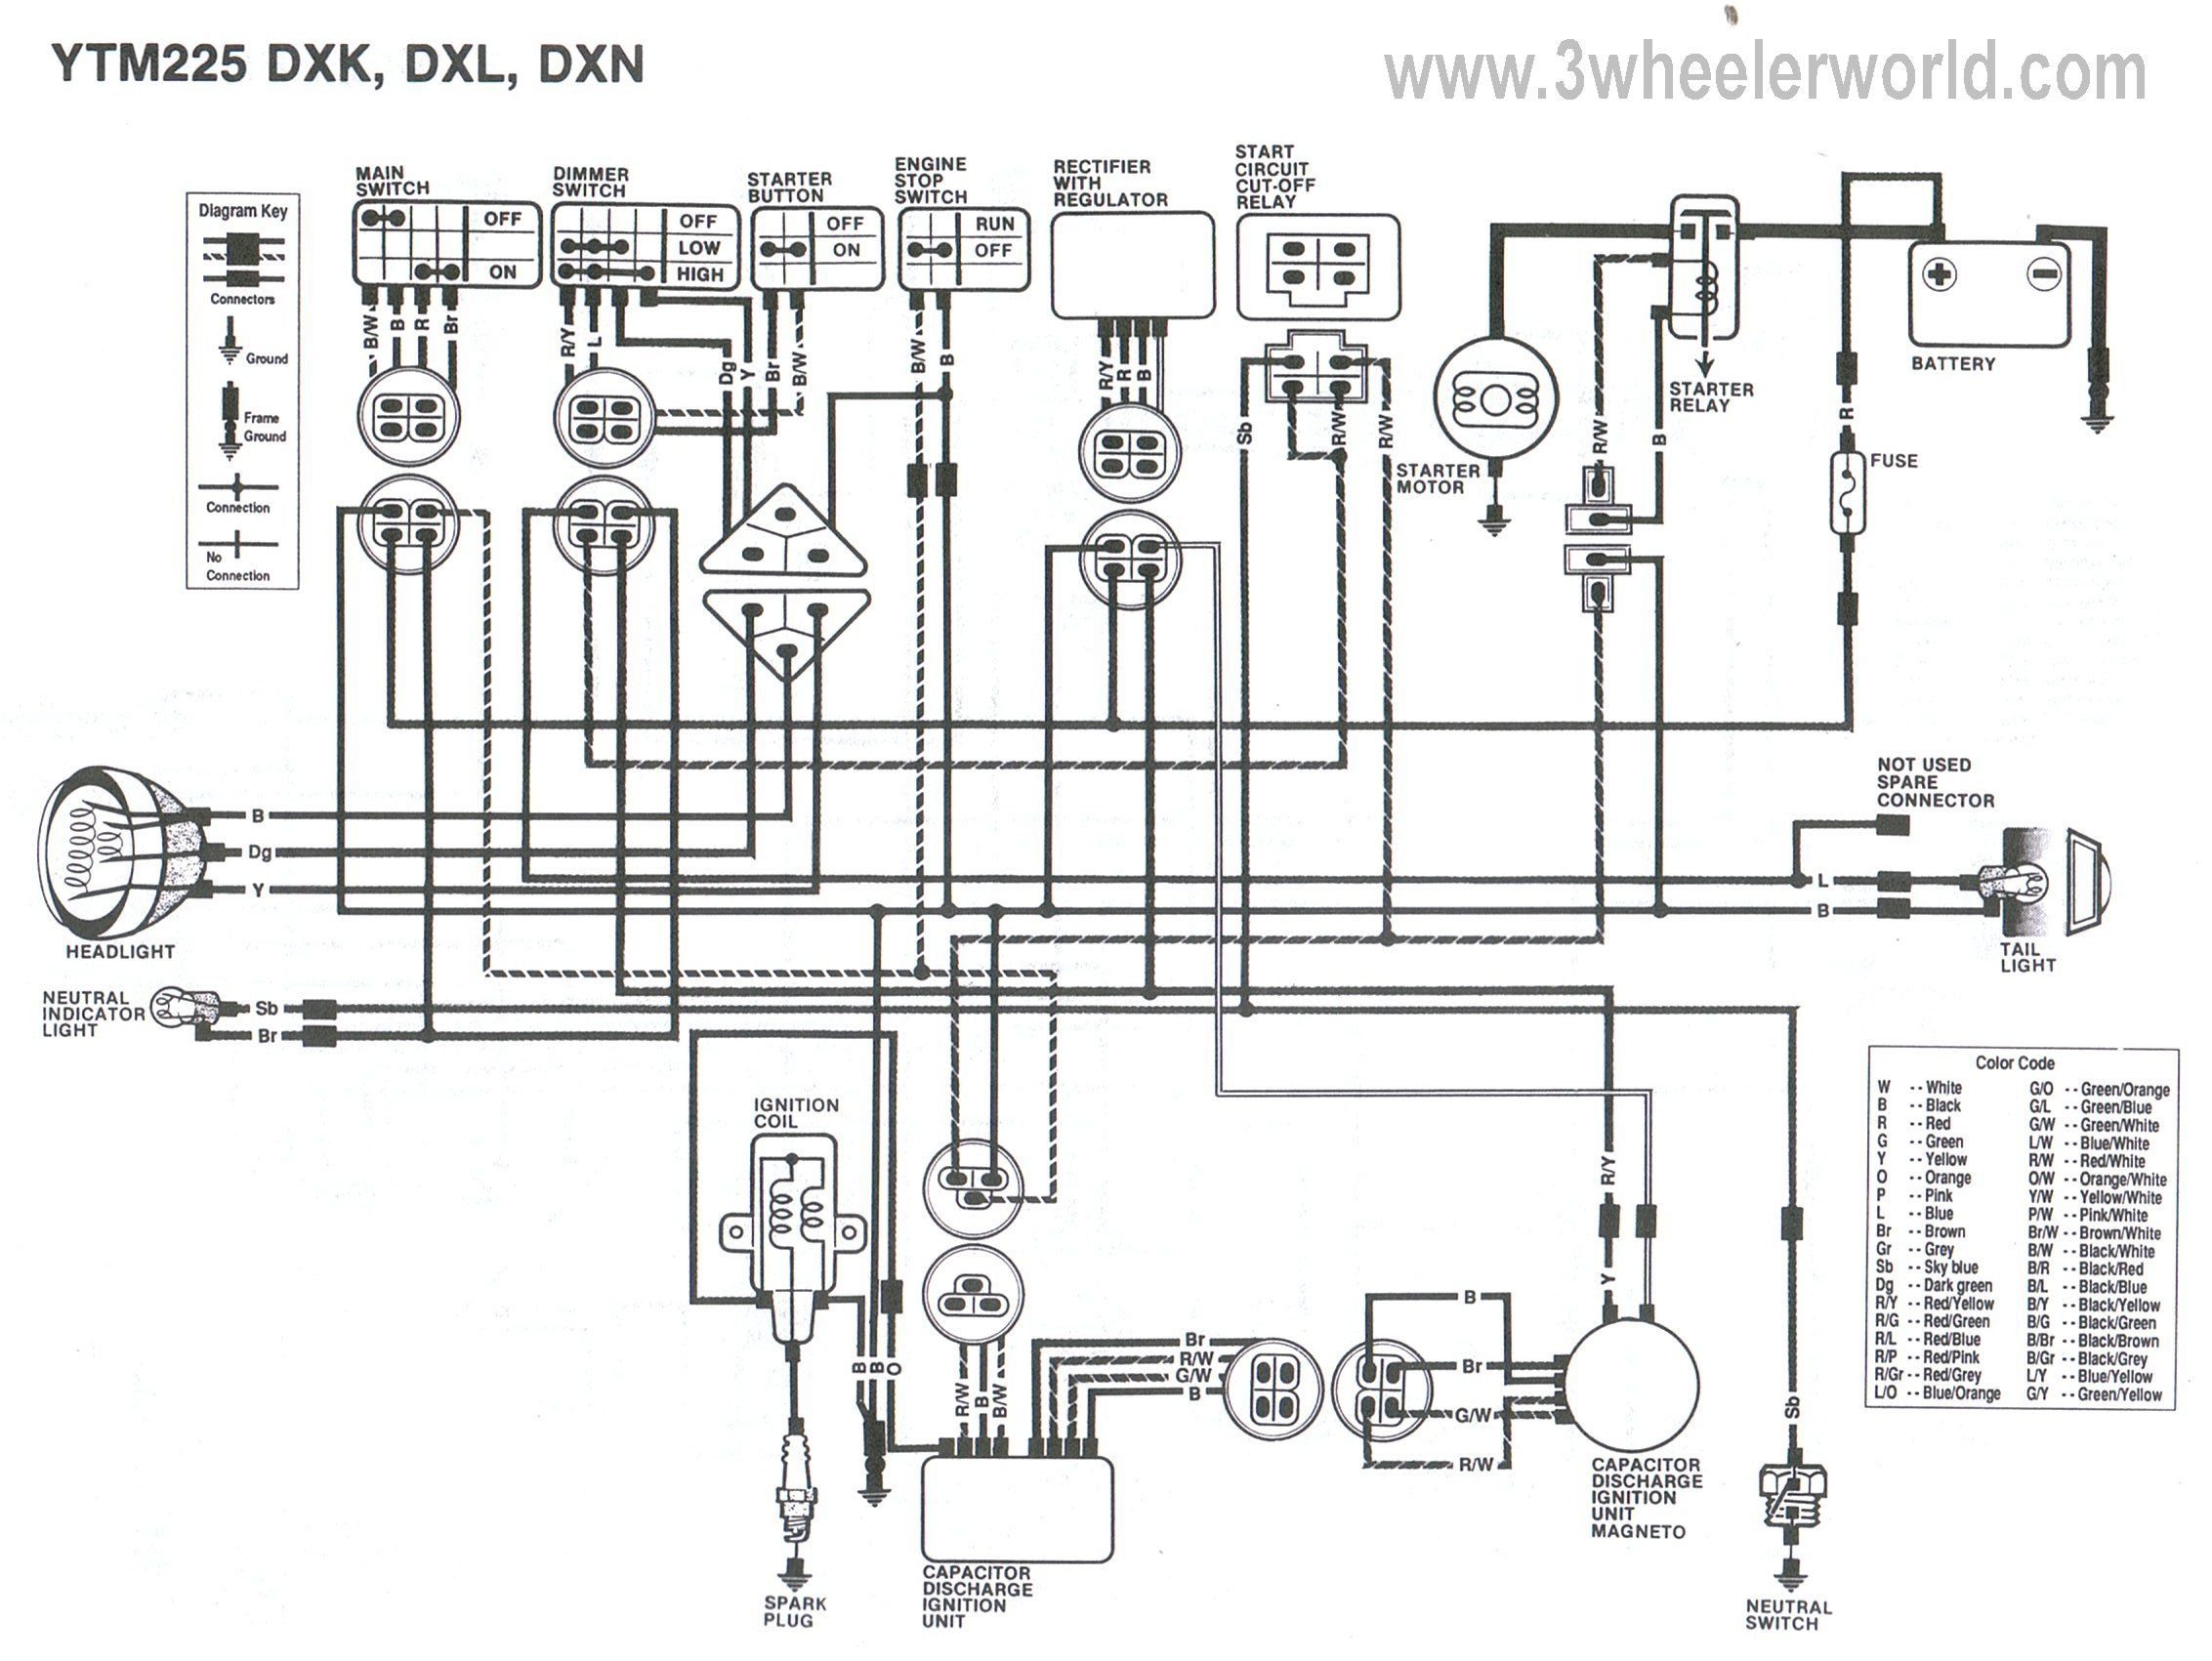 Yamaha 350 Warrior Wiring Diagram Wiring Diagram Database